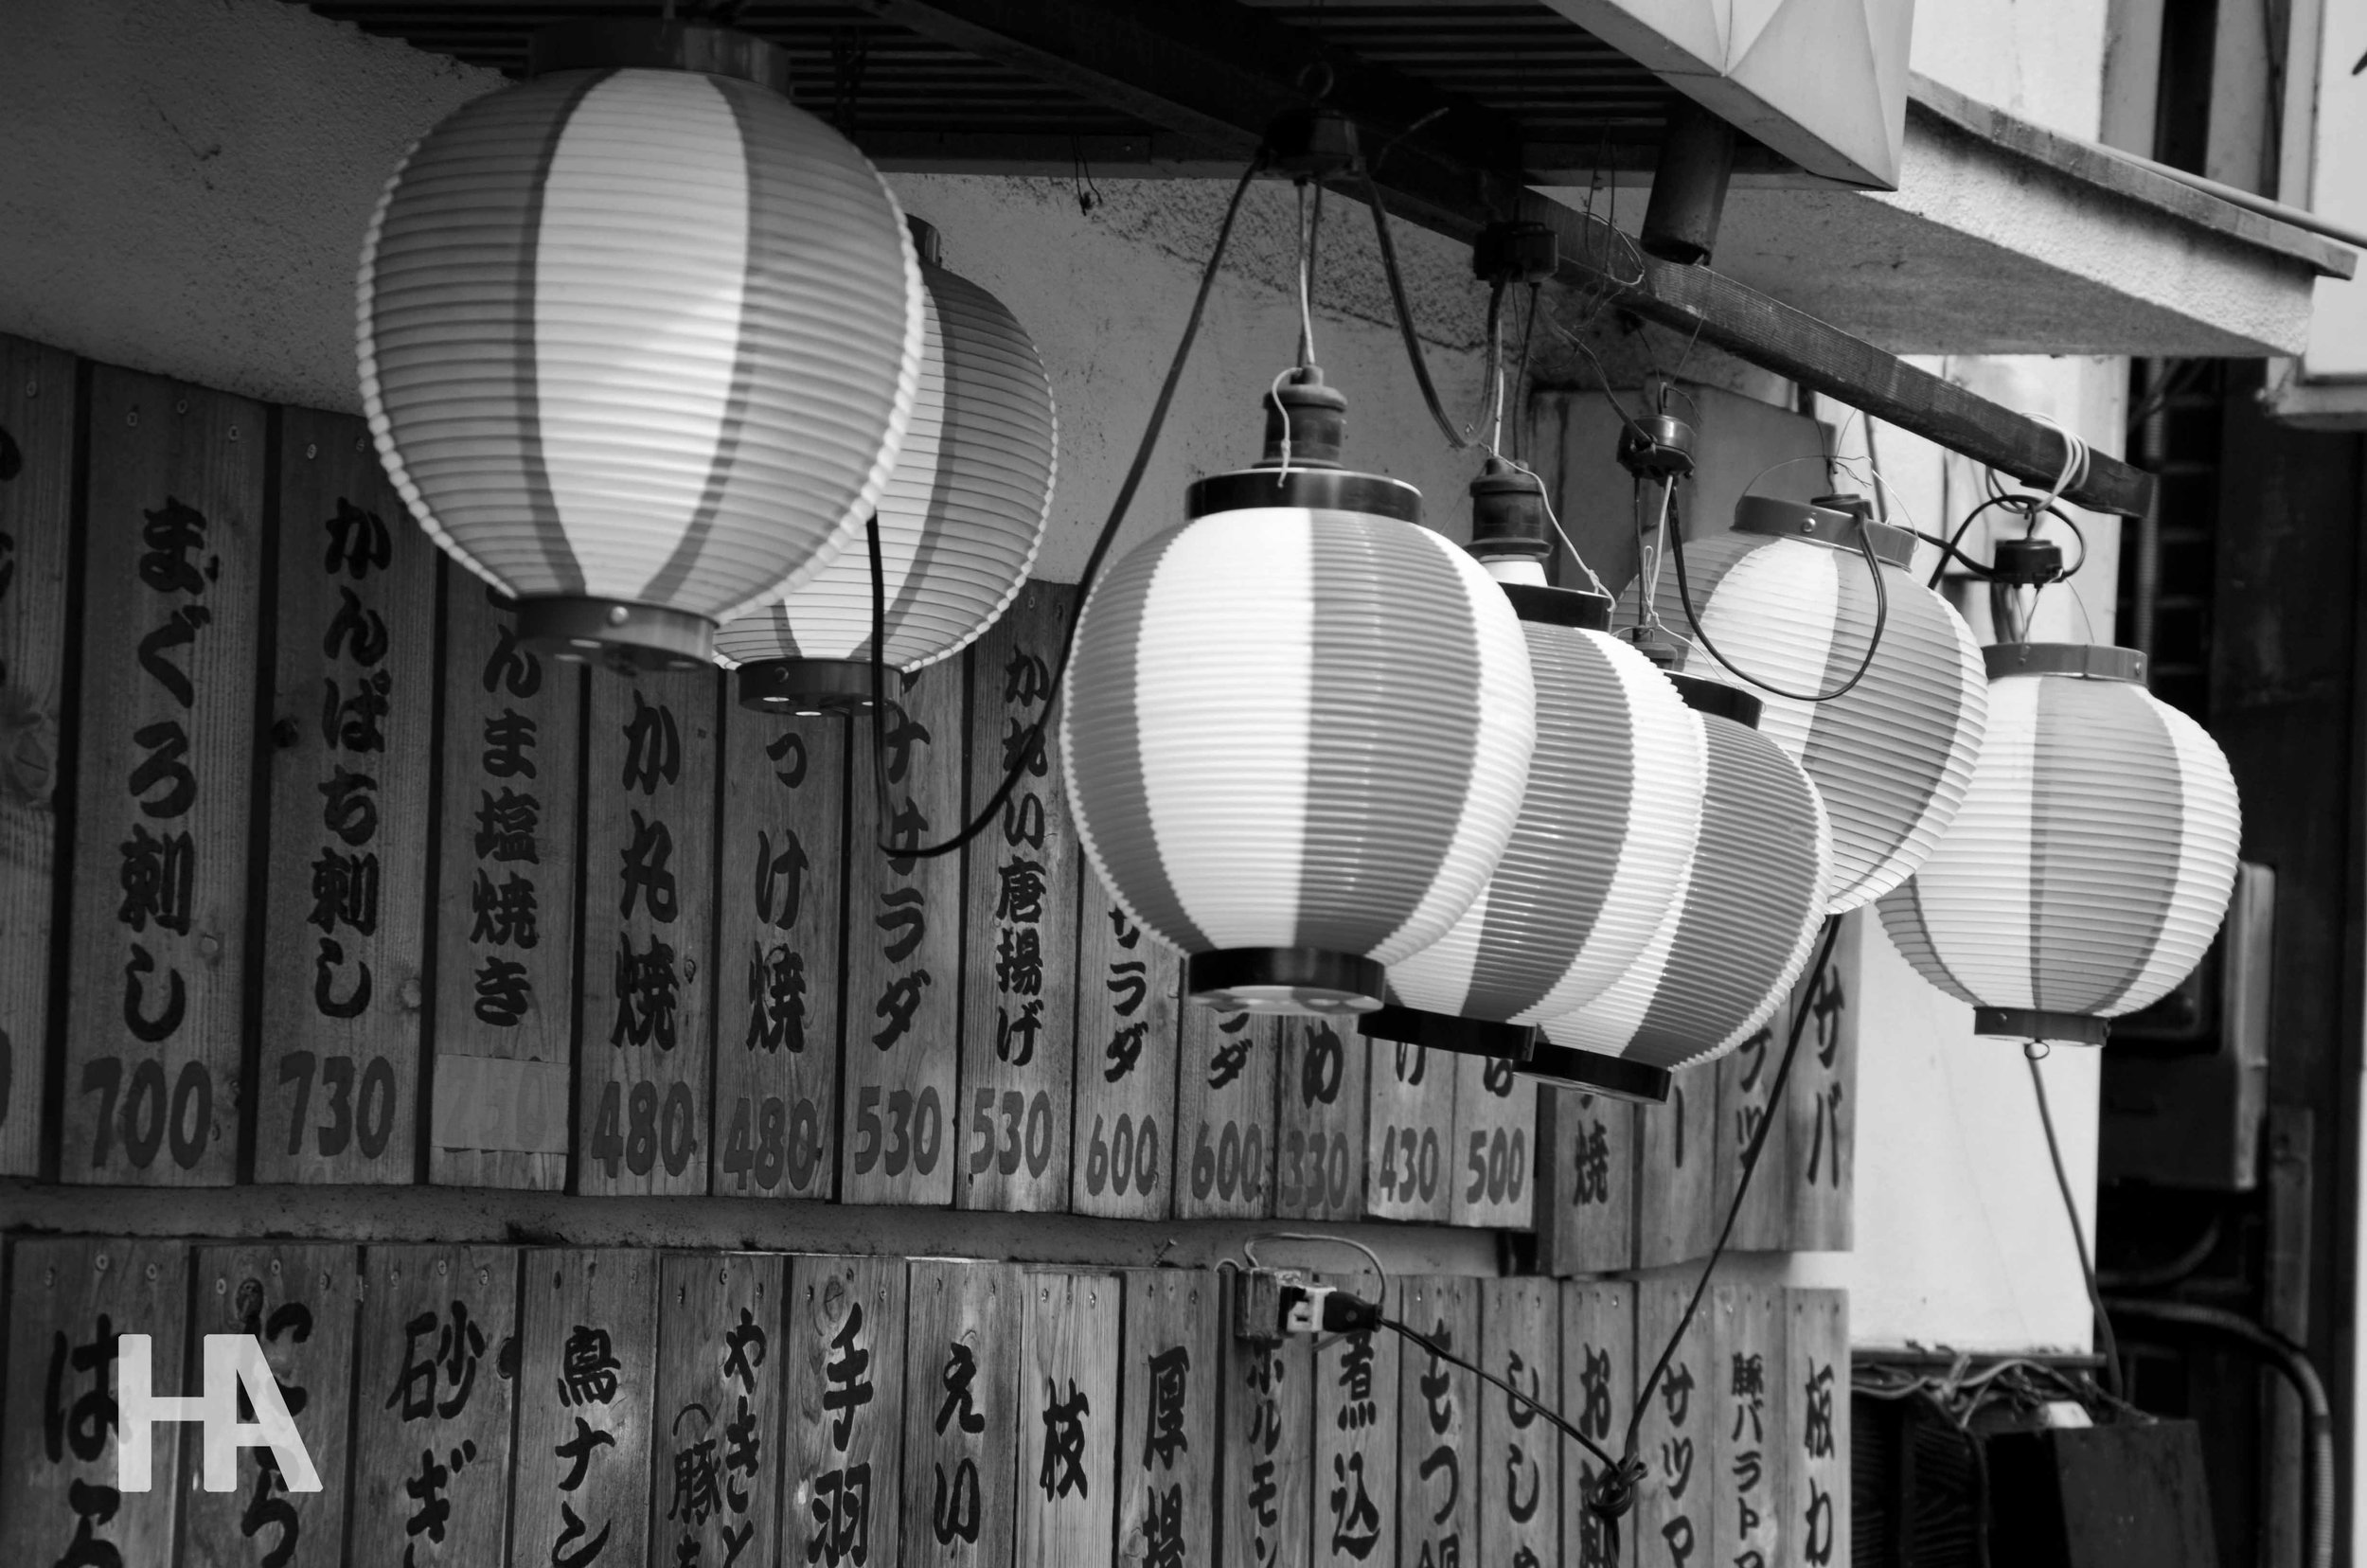 Paper Lanterns Melbourne Hallway Artwork Photos From A Local Melbourne Photographer